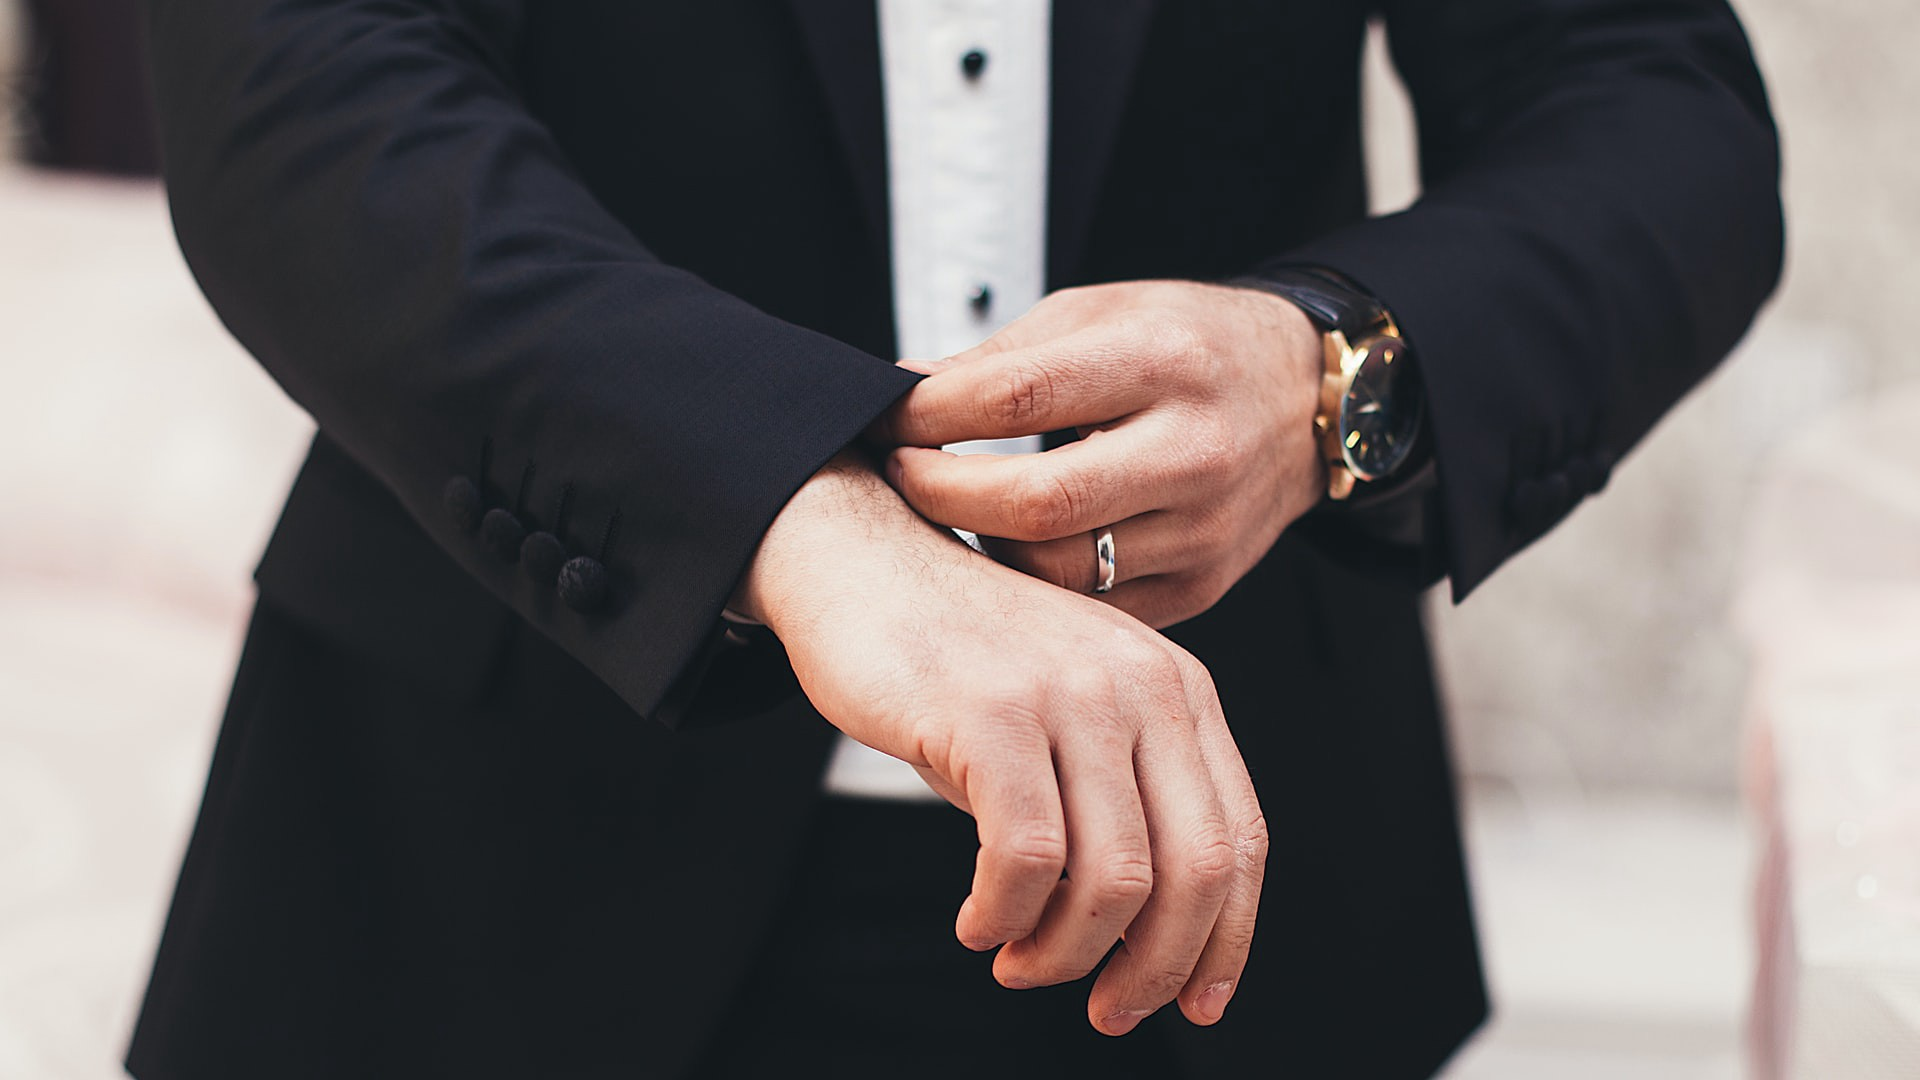 A man in a suit wearing an expensive watch adjusts his sleeves